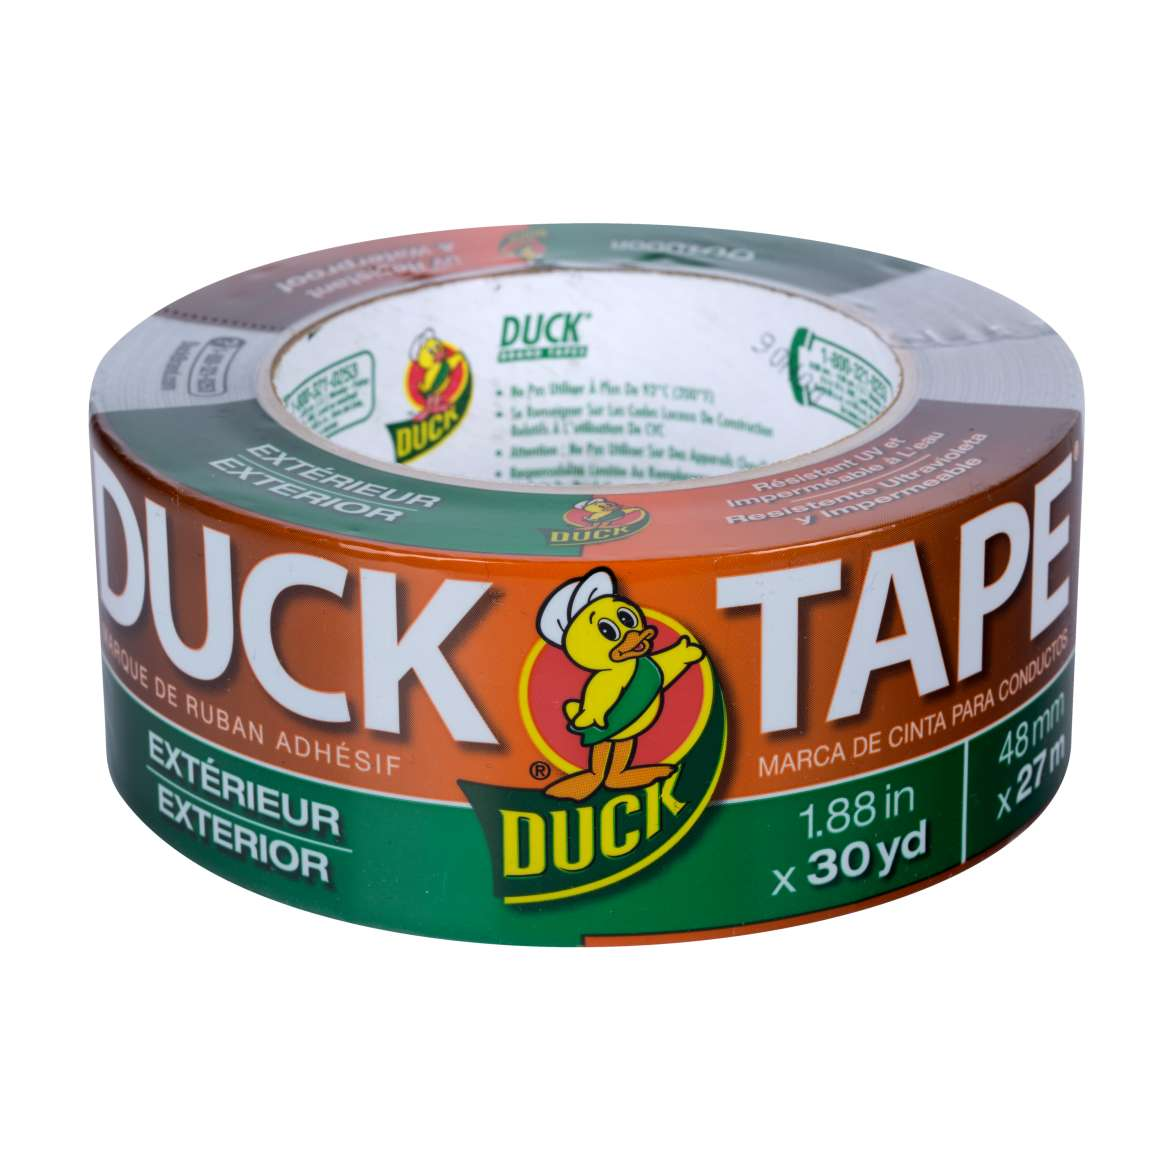 Duck Brand Outdoor Duct Tape, 1.88 in. x 30 yds., Silver